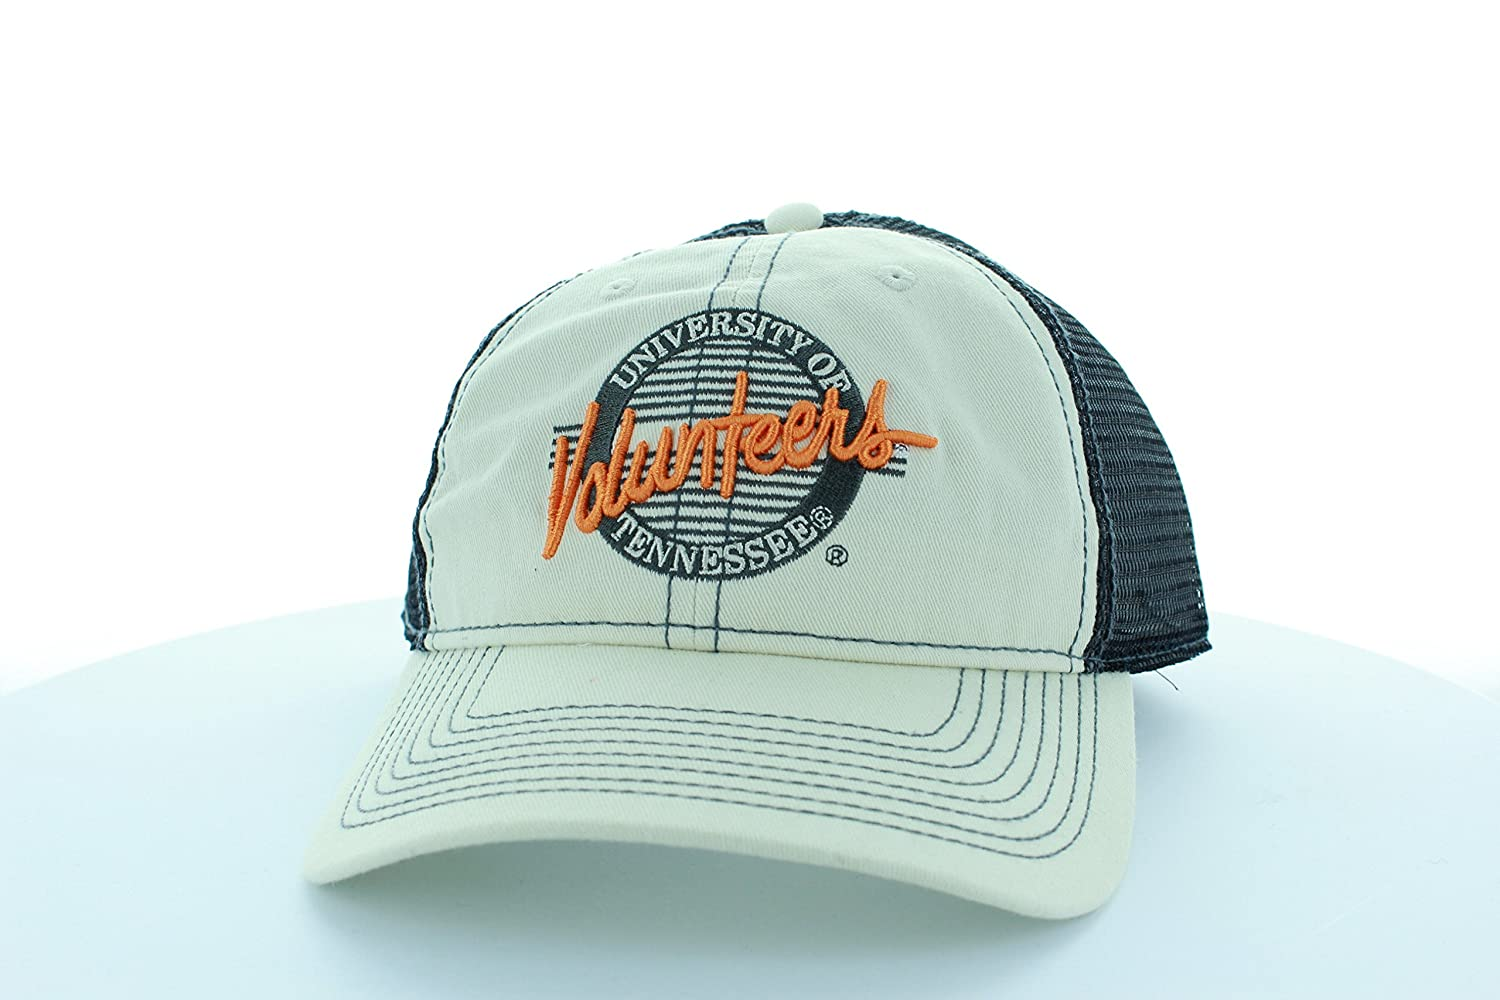 Tennessee Volunteers Stone//Gray Circle Hat with Mesh Trucker Style